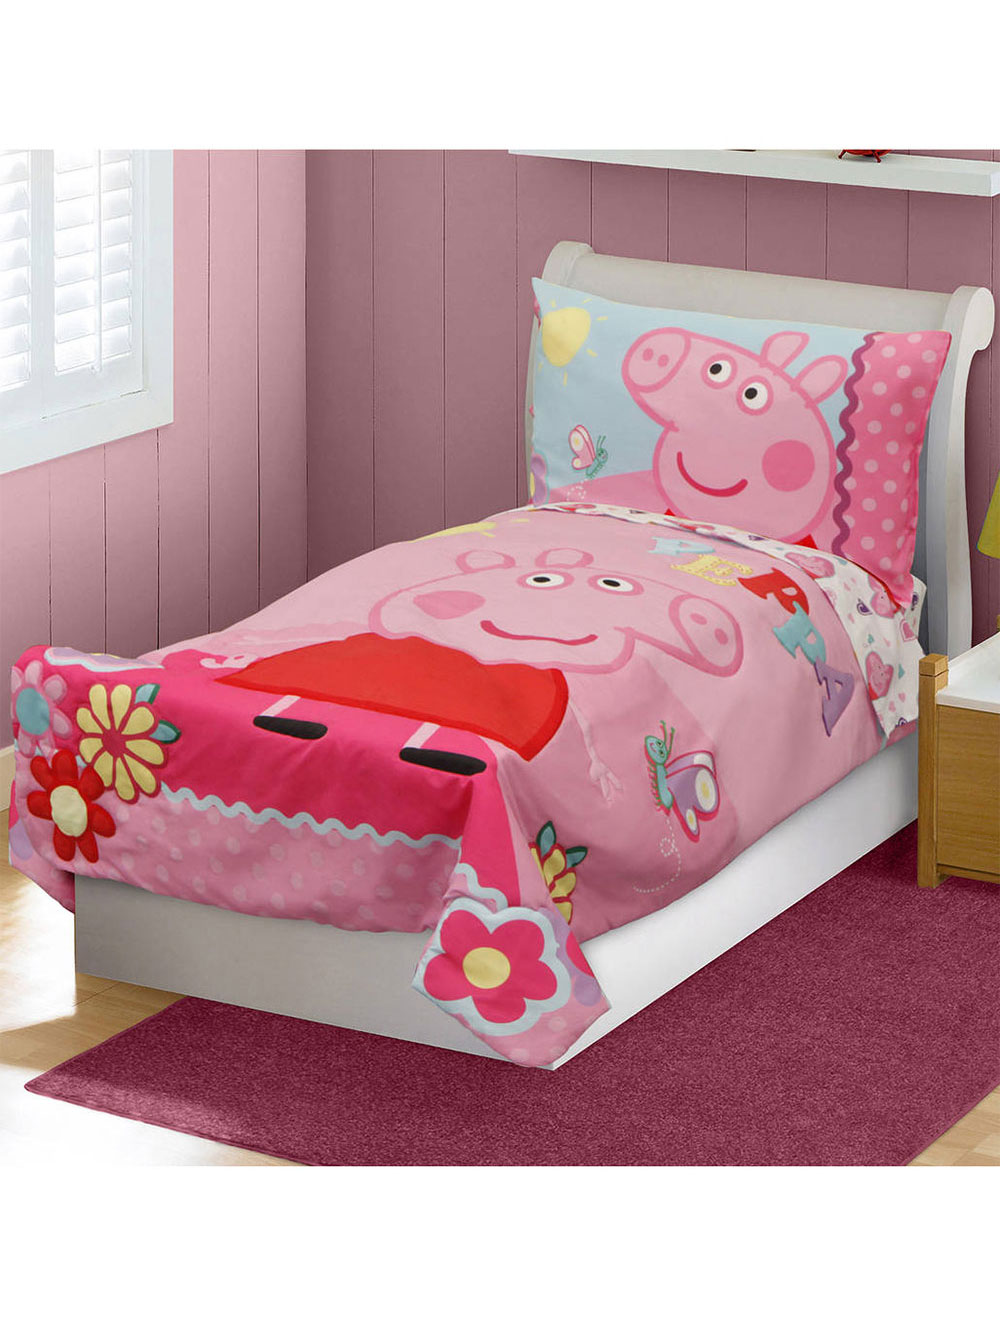 Image of Peppa Pig Sunny Peppa 4Piece Toddler Bedding Set